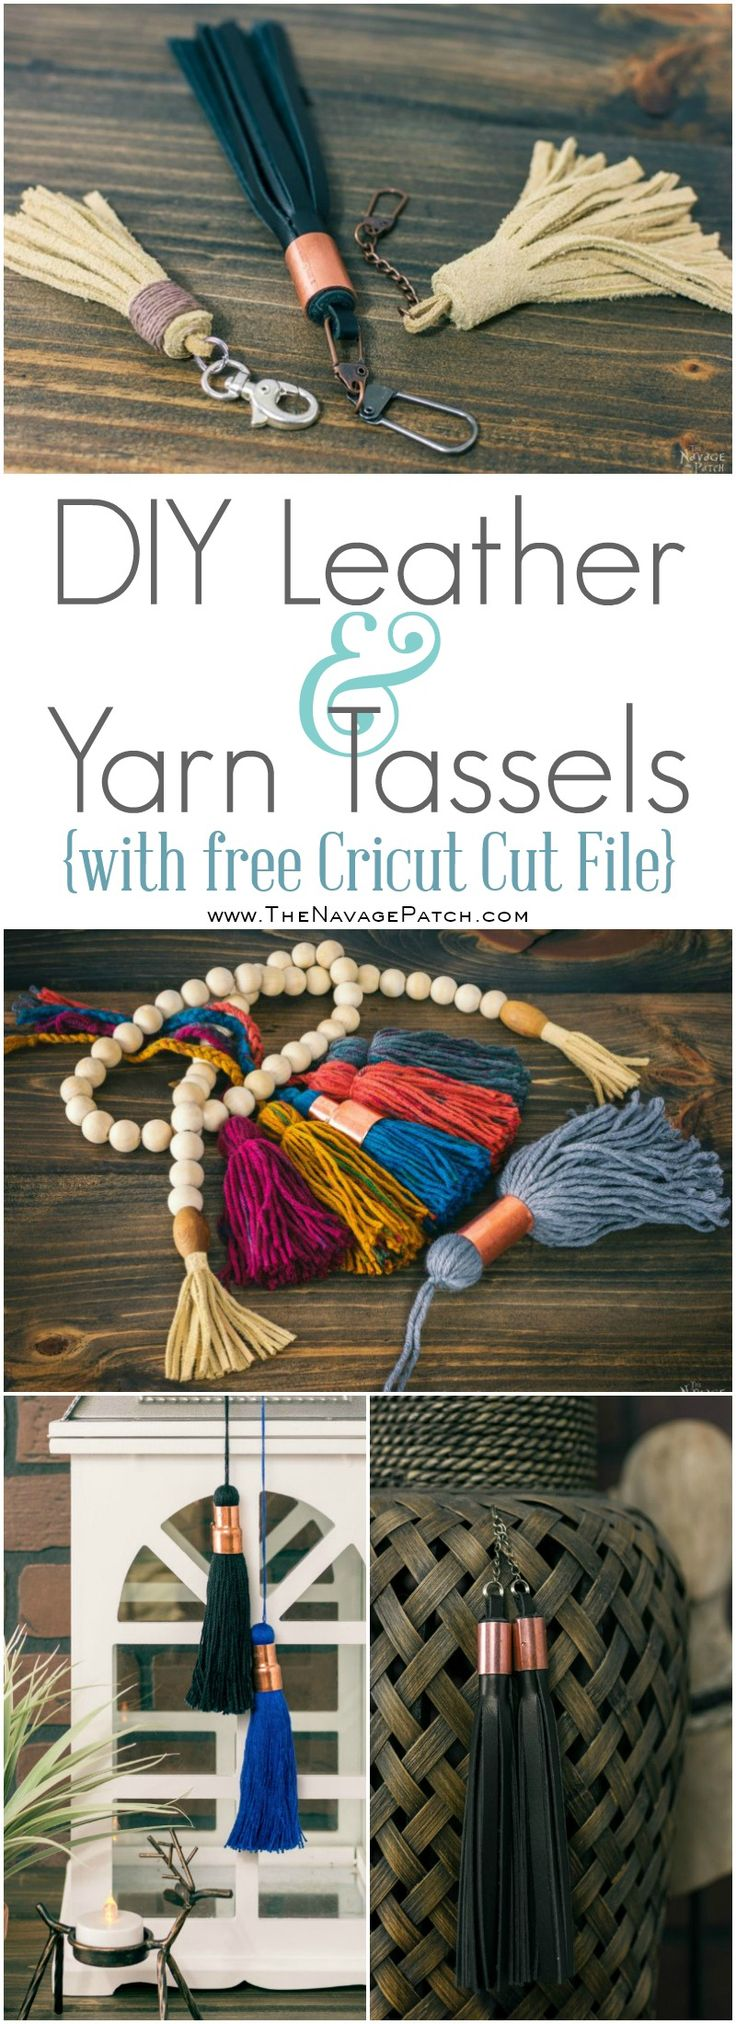 DIY Leather and Yarn Tassels